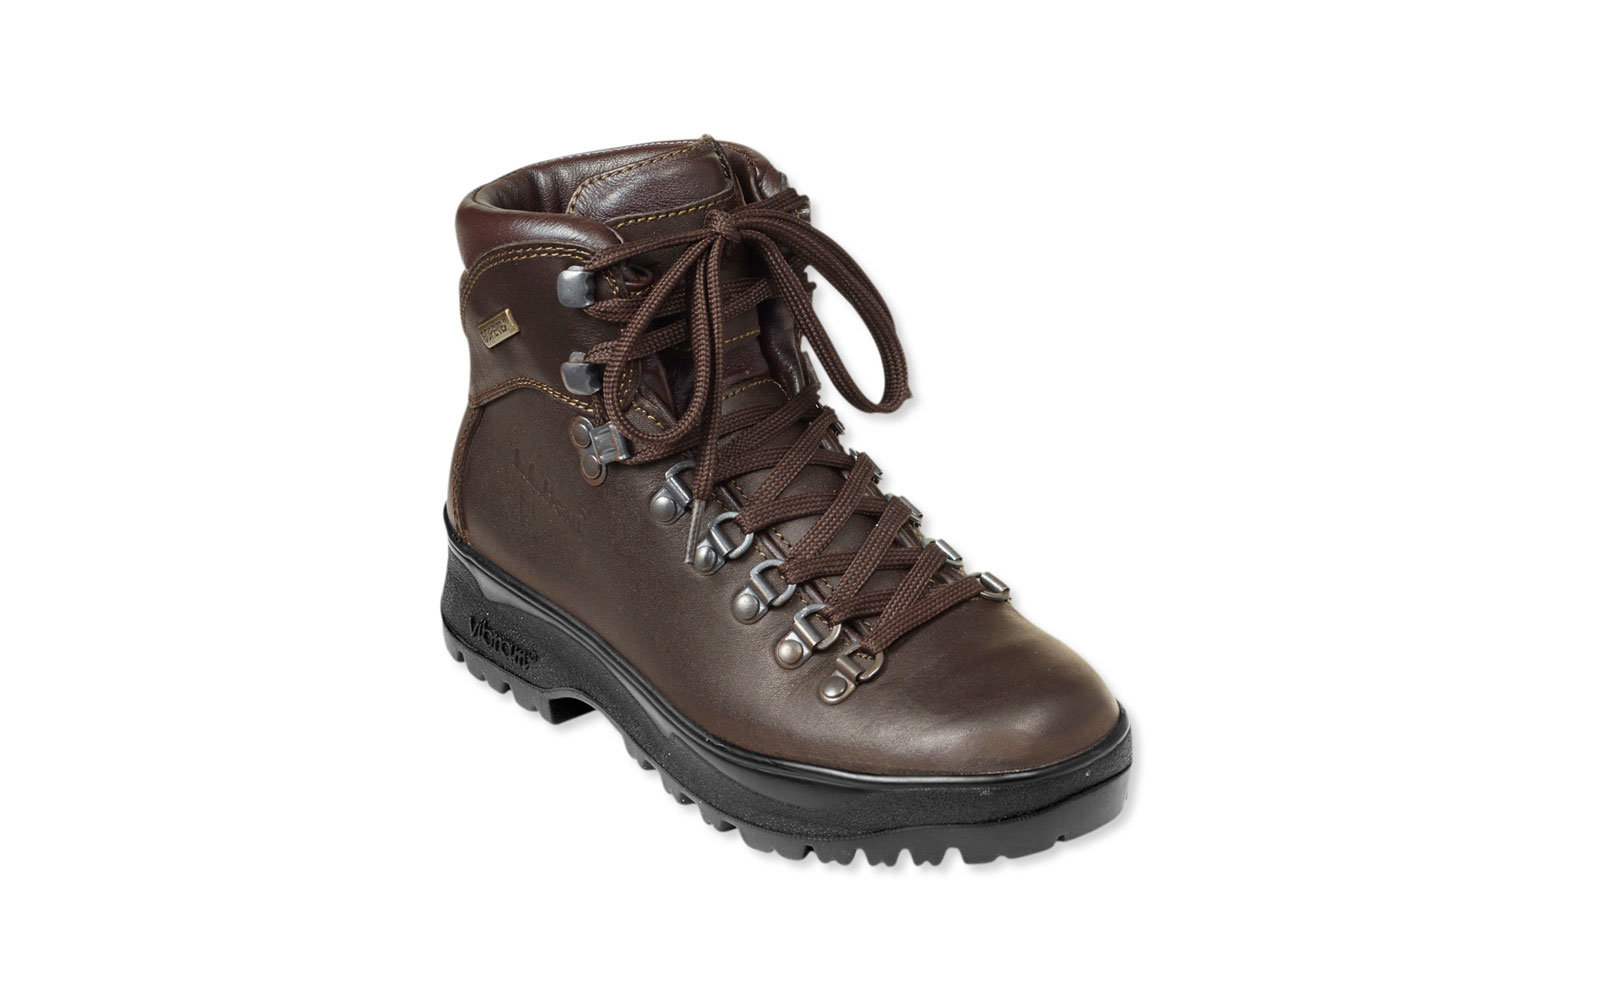 Boots Hiking for women cute recommend to wear for autumn in 2019